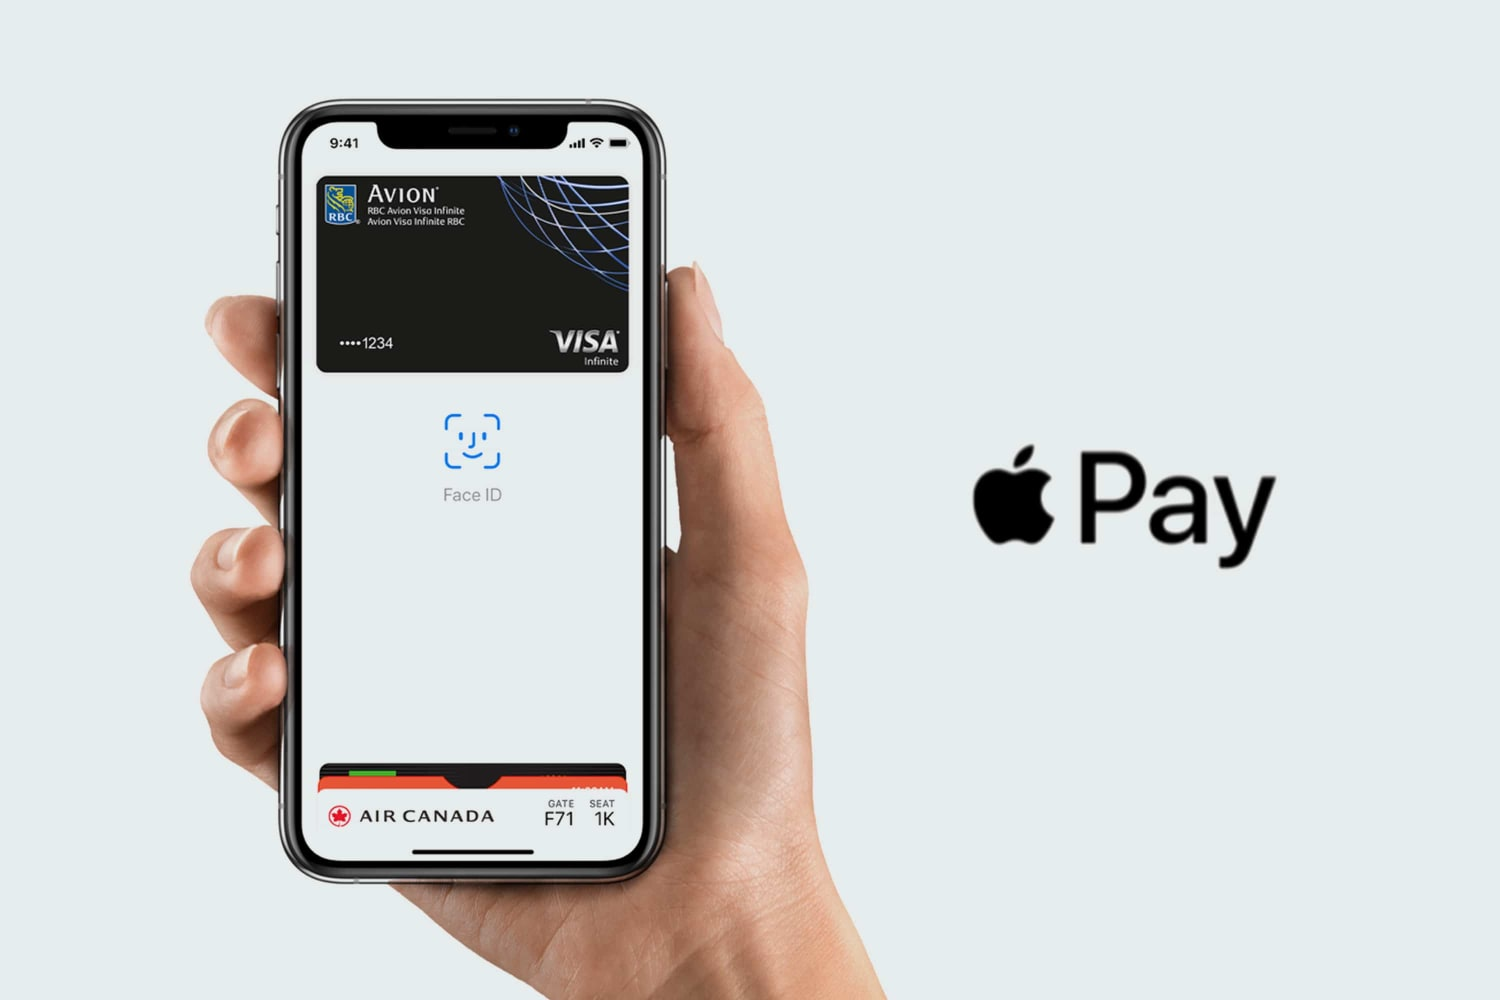 apple-pay-growth-during-pandemic-raises-antitrust-issues-20201218-1